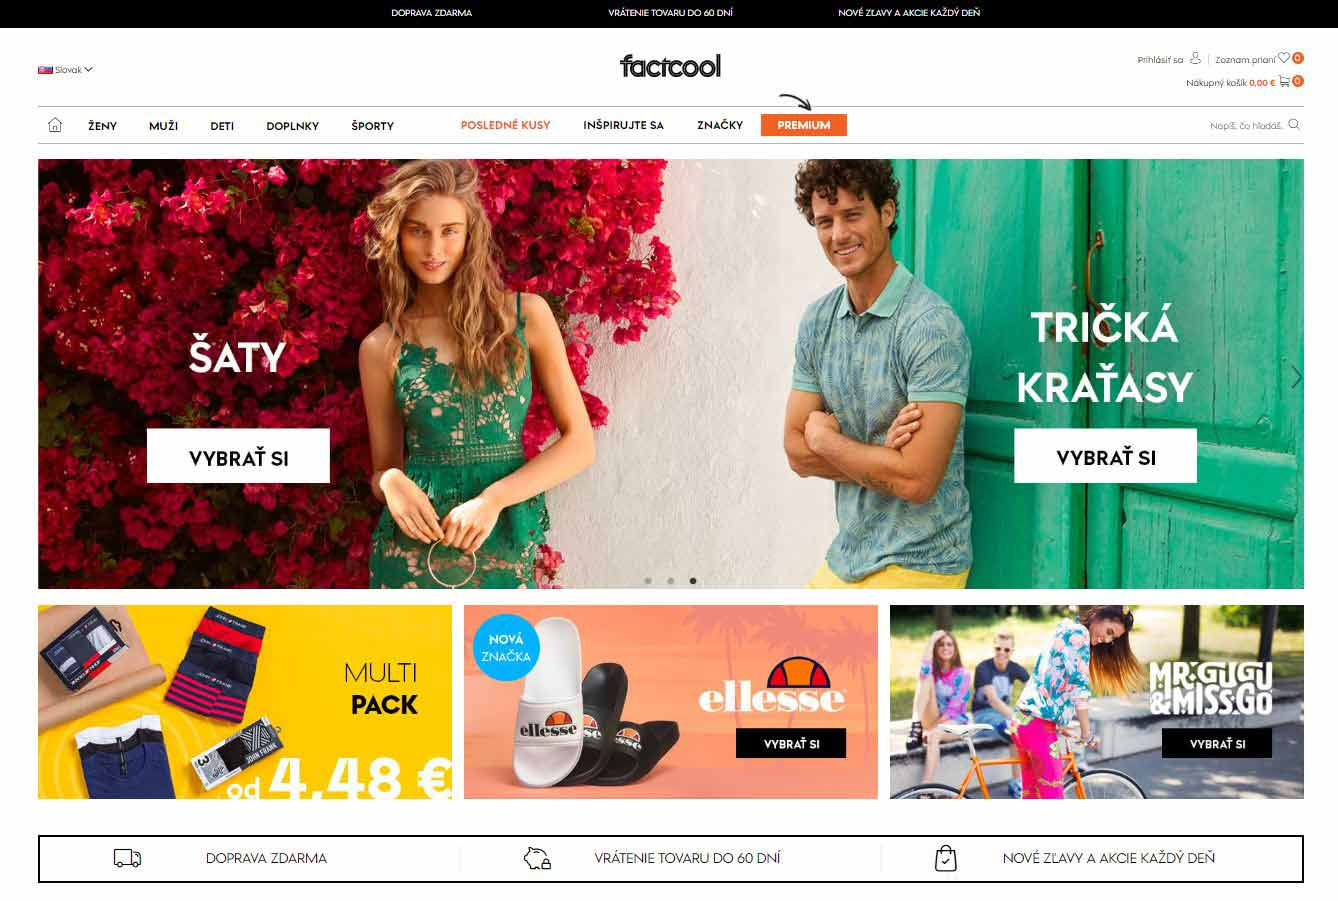 e shop factcool.com